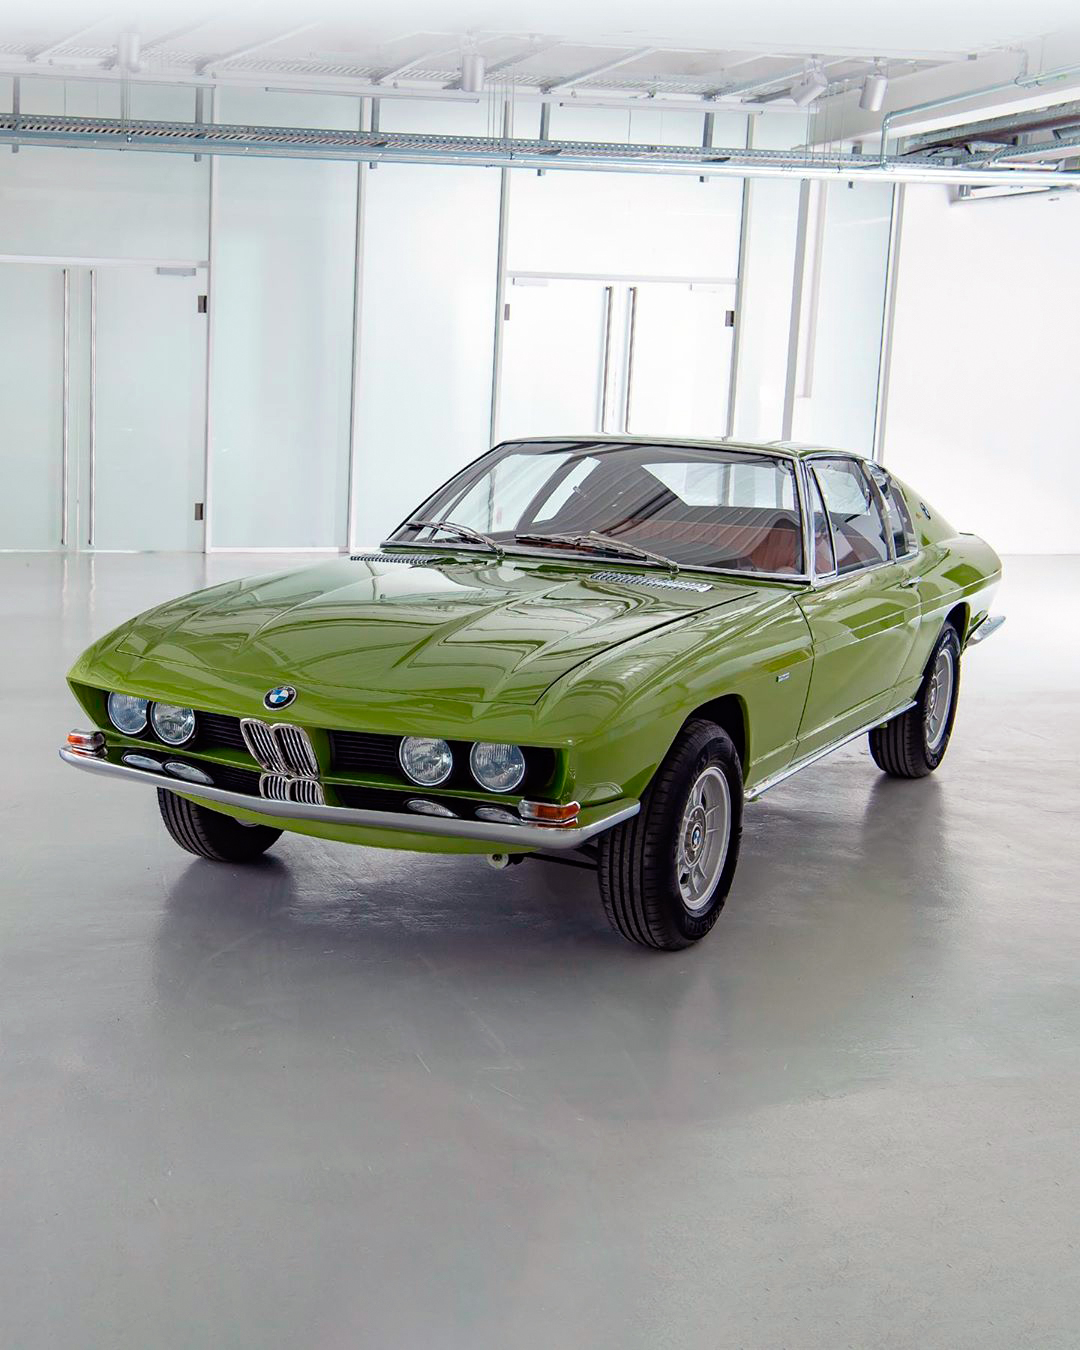 Photo Gallery: Restored BMW 2800 GTS is a blast from the past